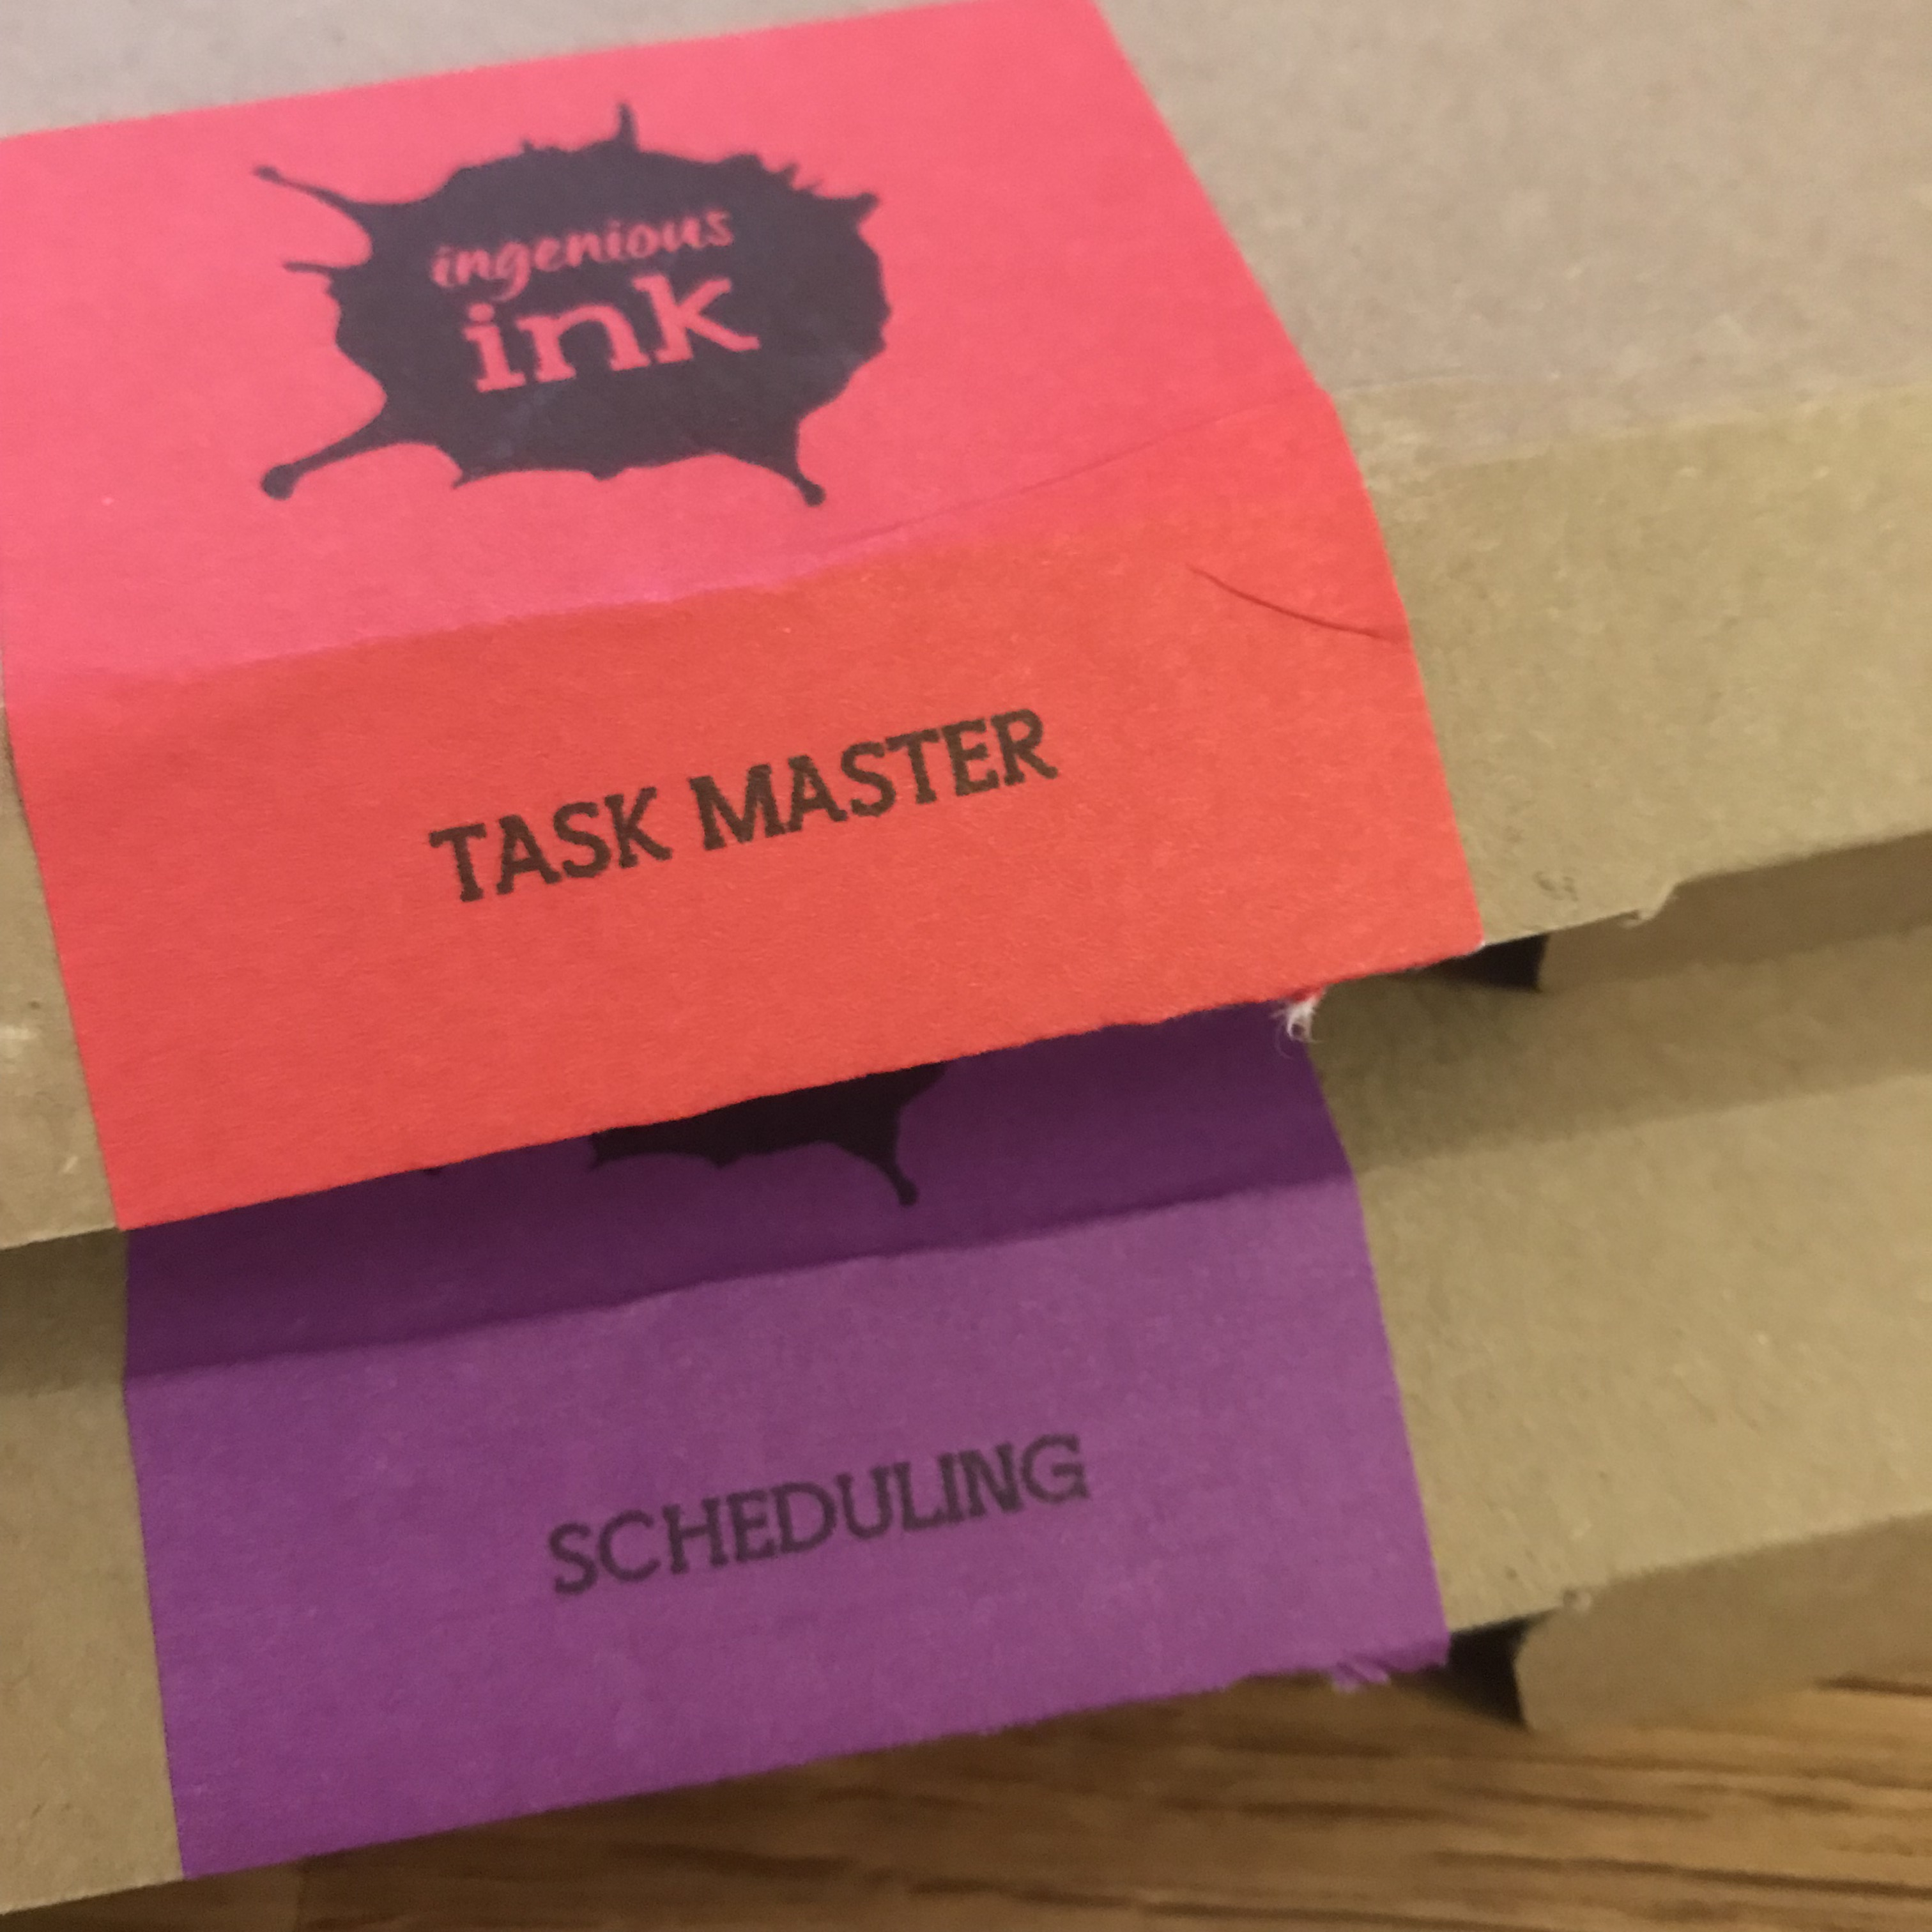 Friday evening with taskmaster ink